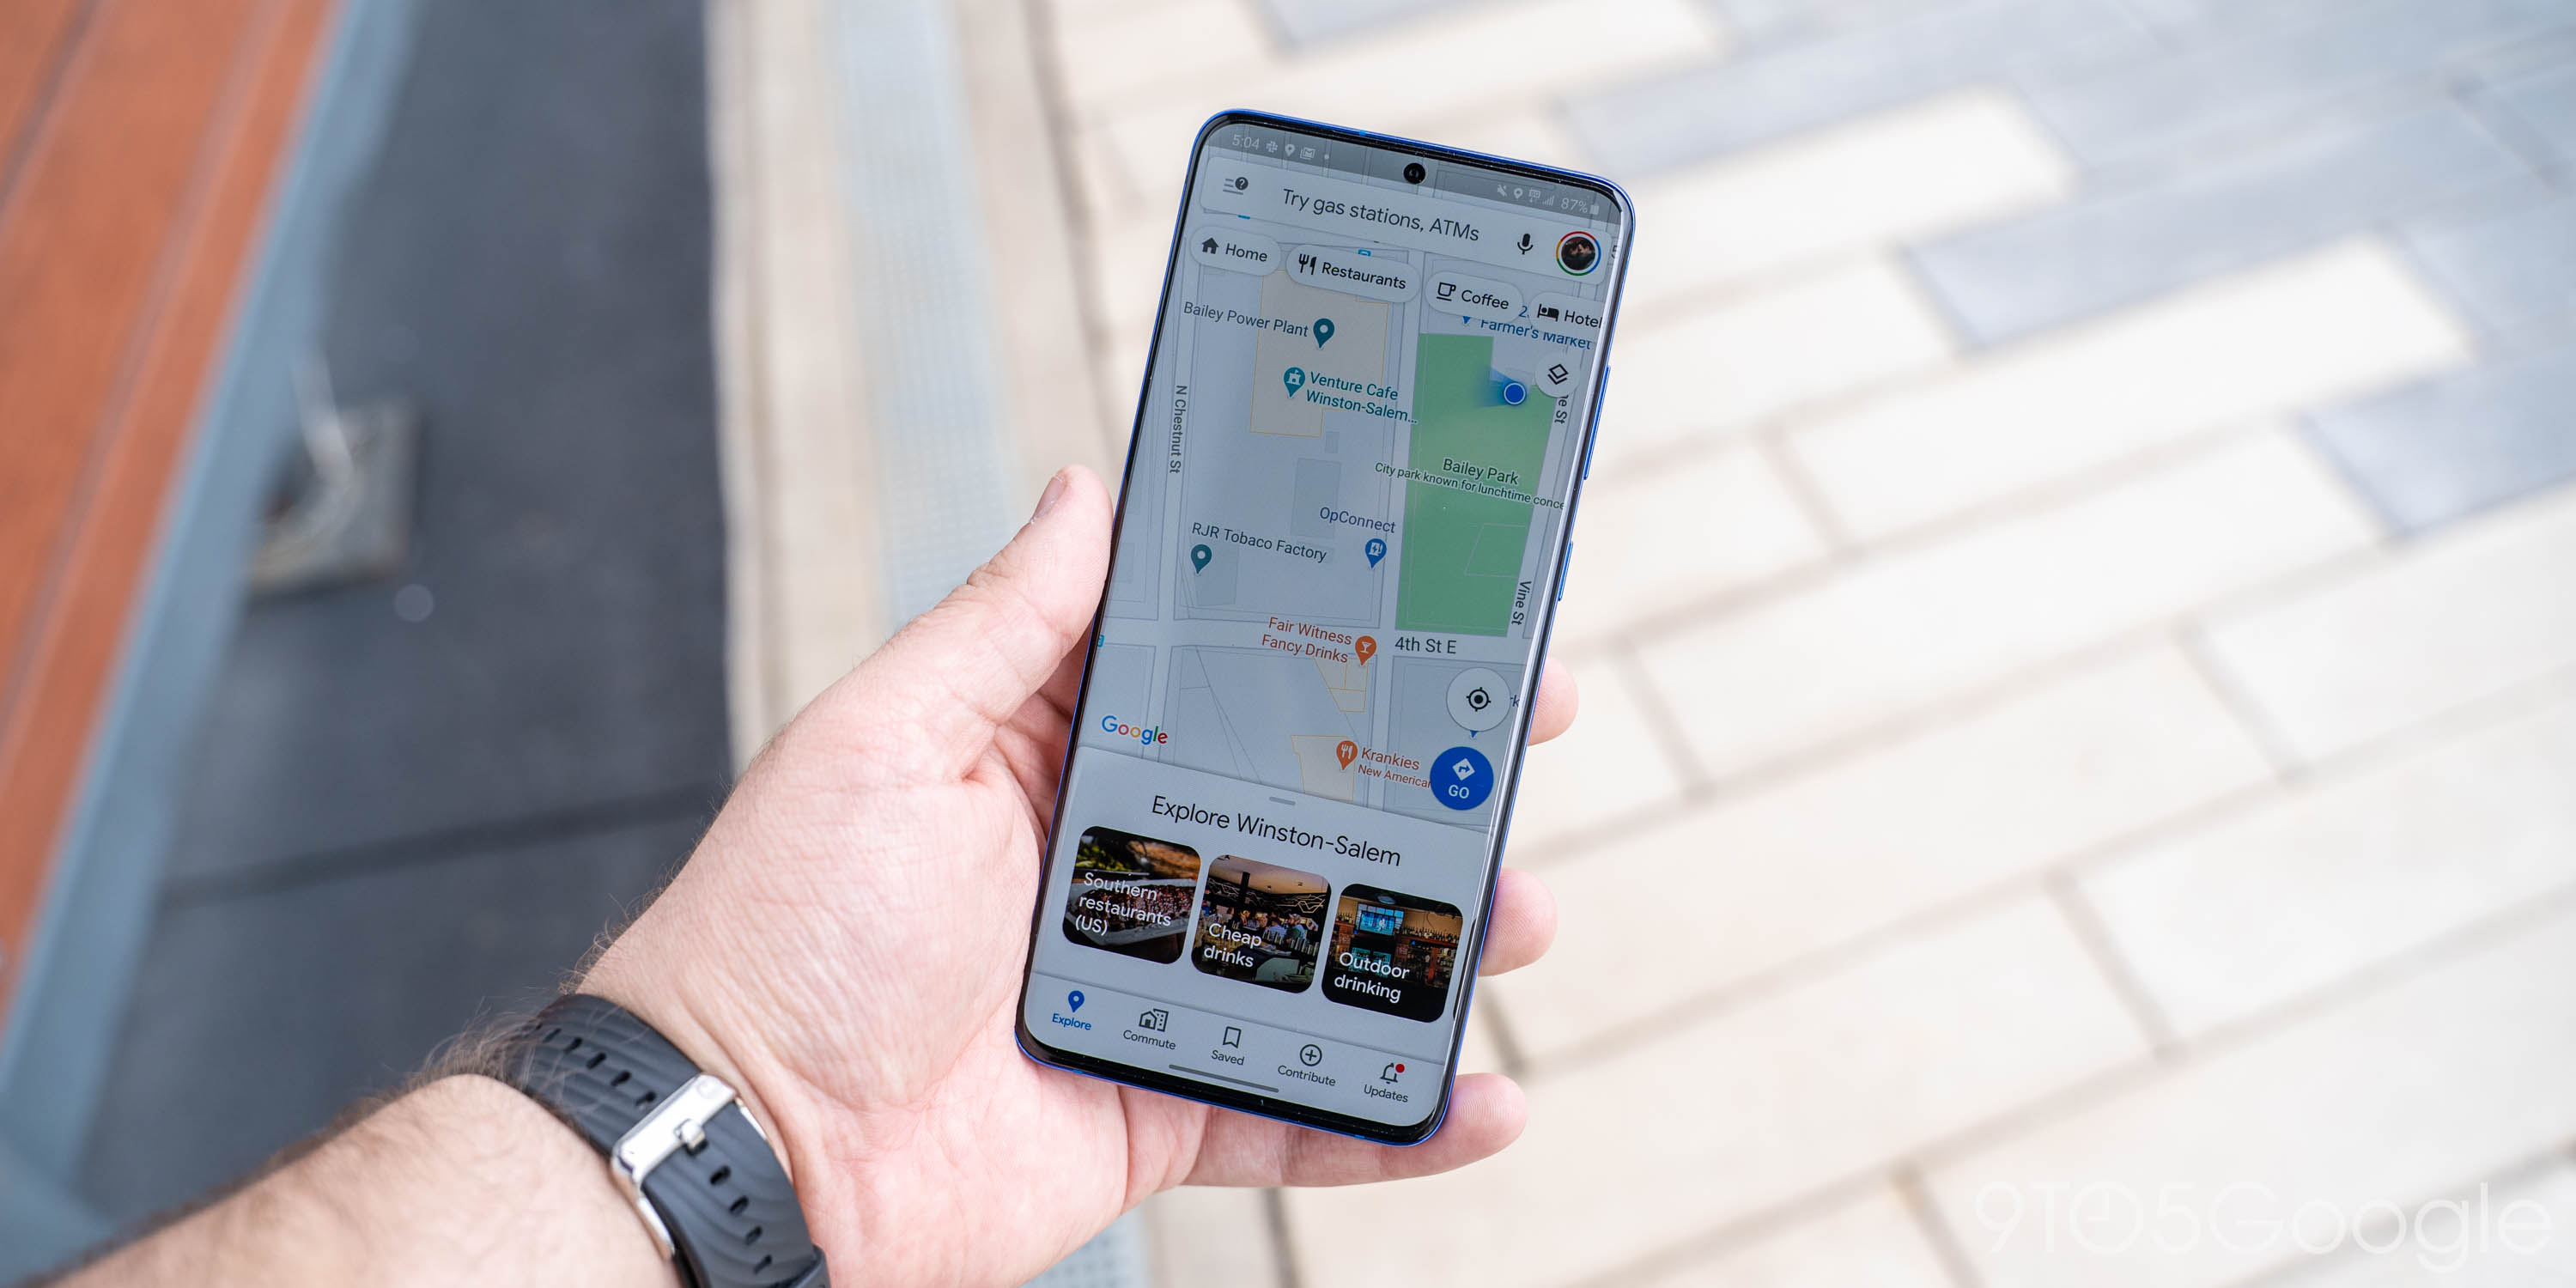 [Update: Rolling out] Google Maps making streets, nature much more detailed